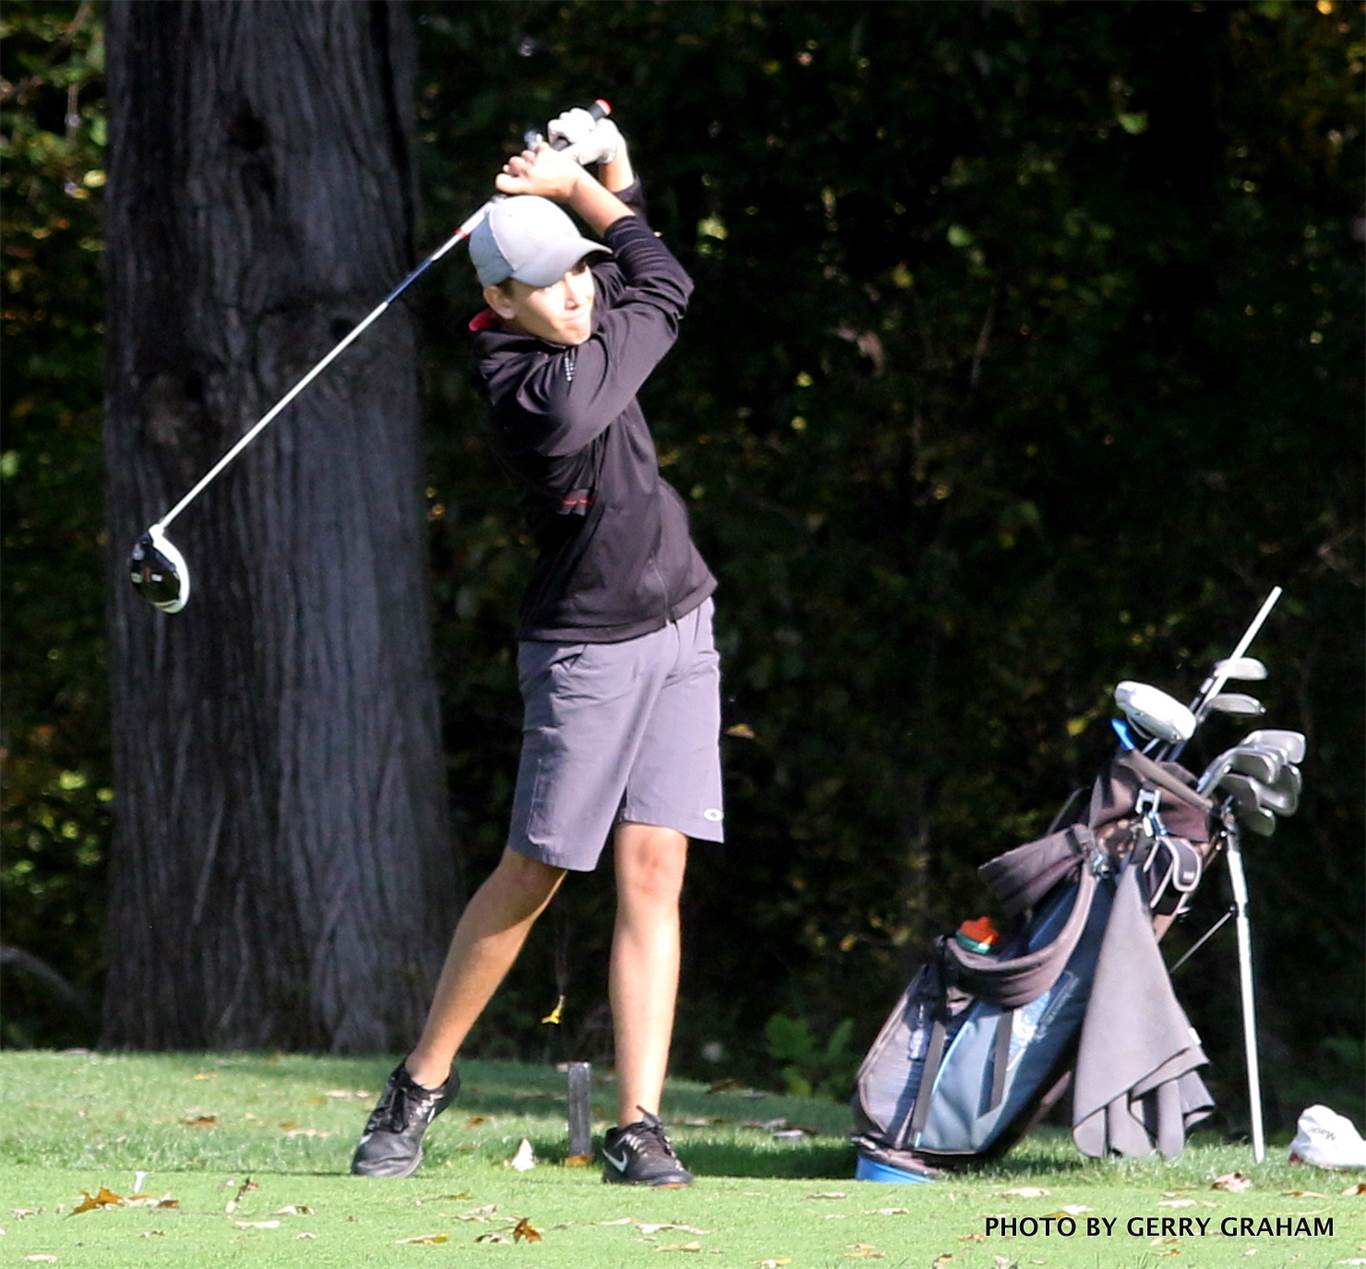 BT's Adam McLean finished the first round of the OFSAA boys' golf championship with an 85 (T84). Photo by Gerry Graham.